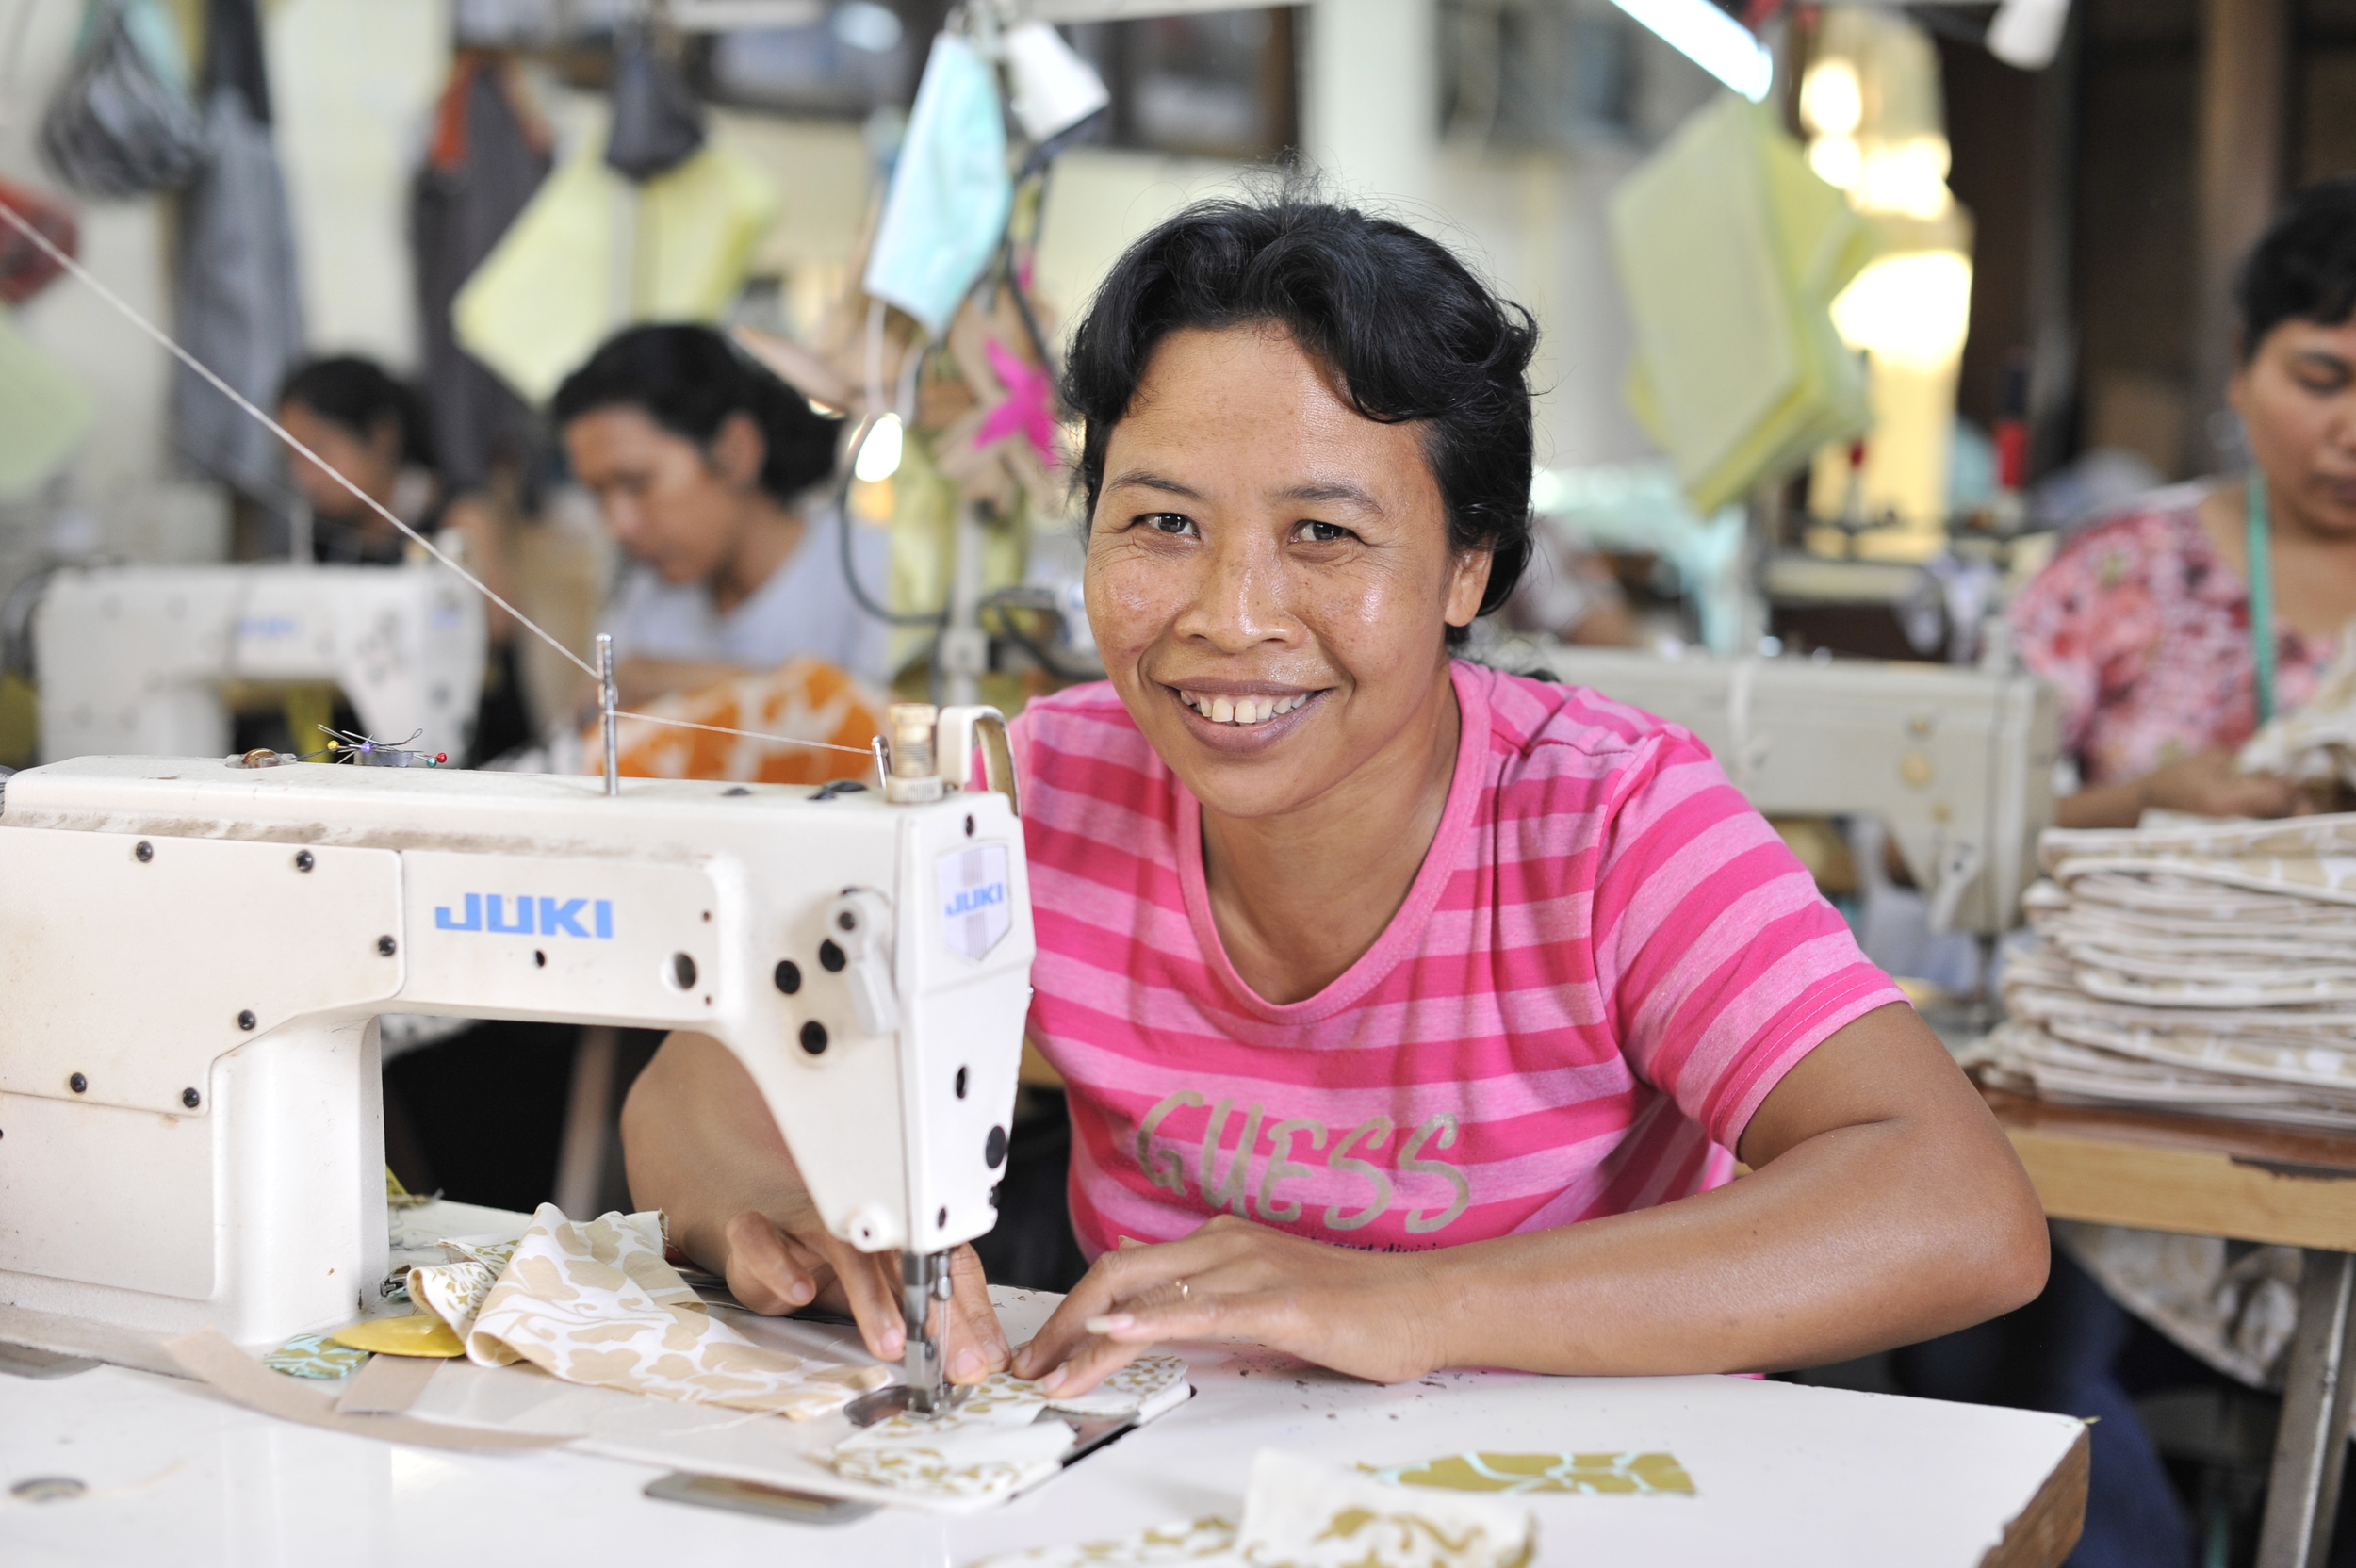 Producers of BaliZen's gorgeous Fairtrade fabric range are part of an ethical industry model IMAGE via BaliZen